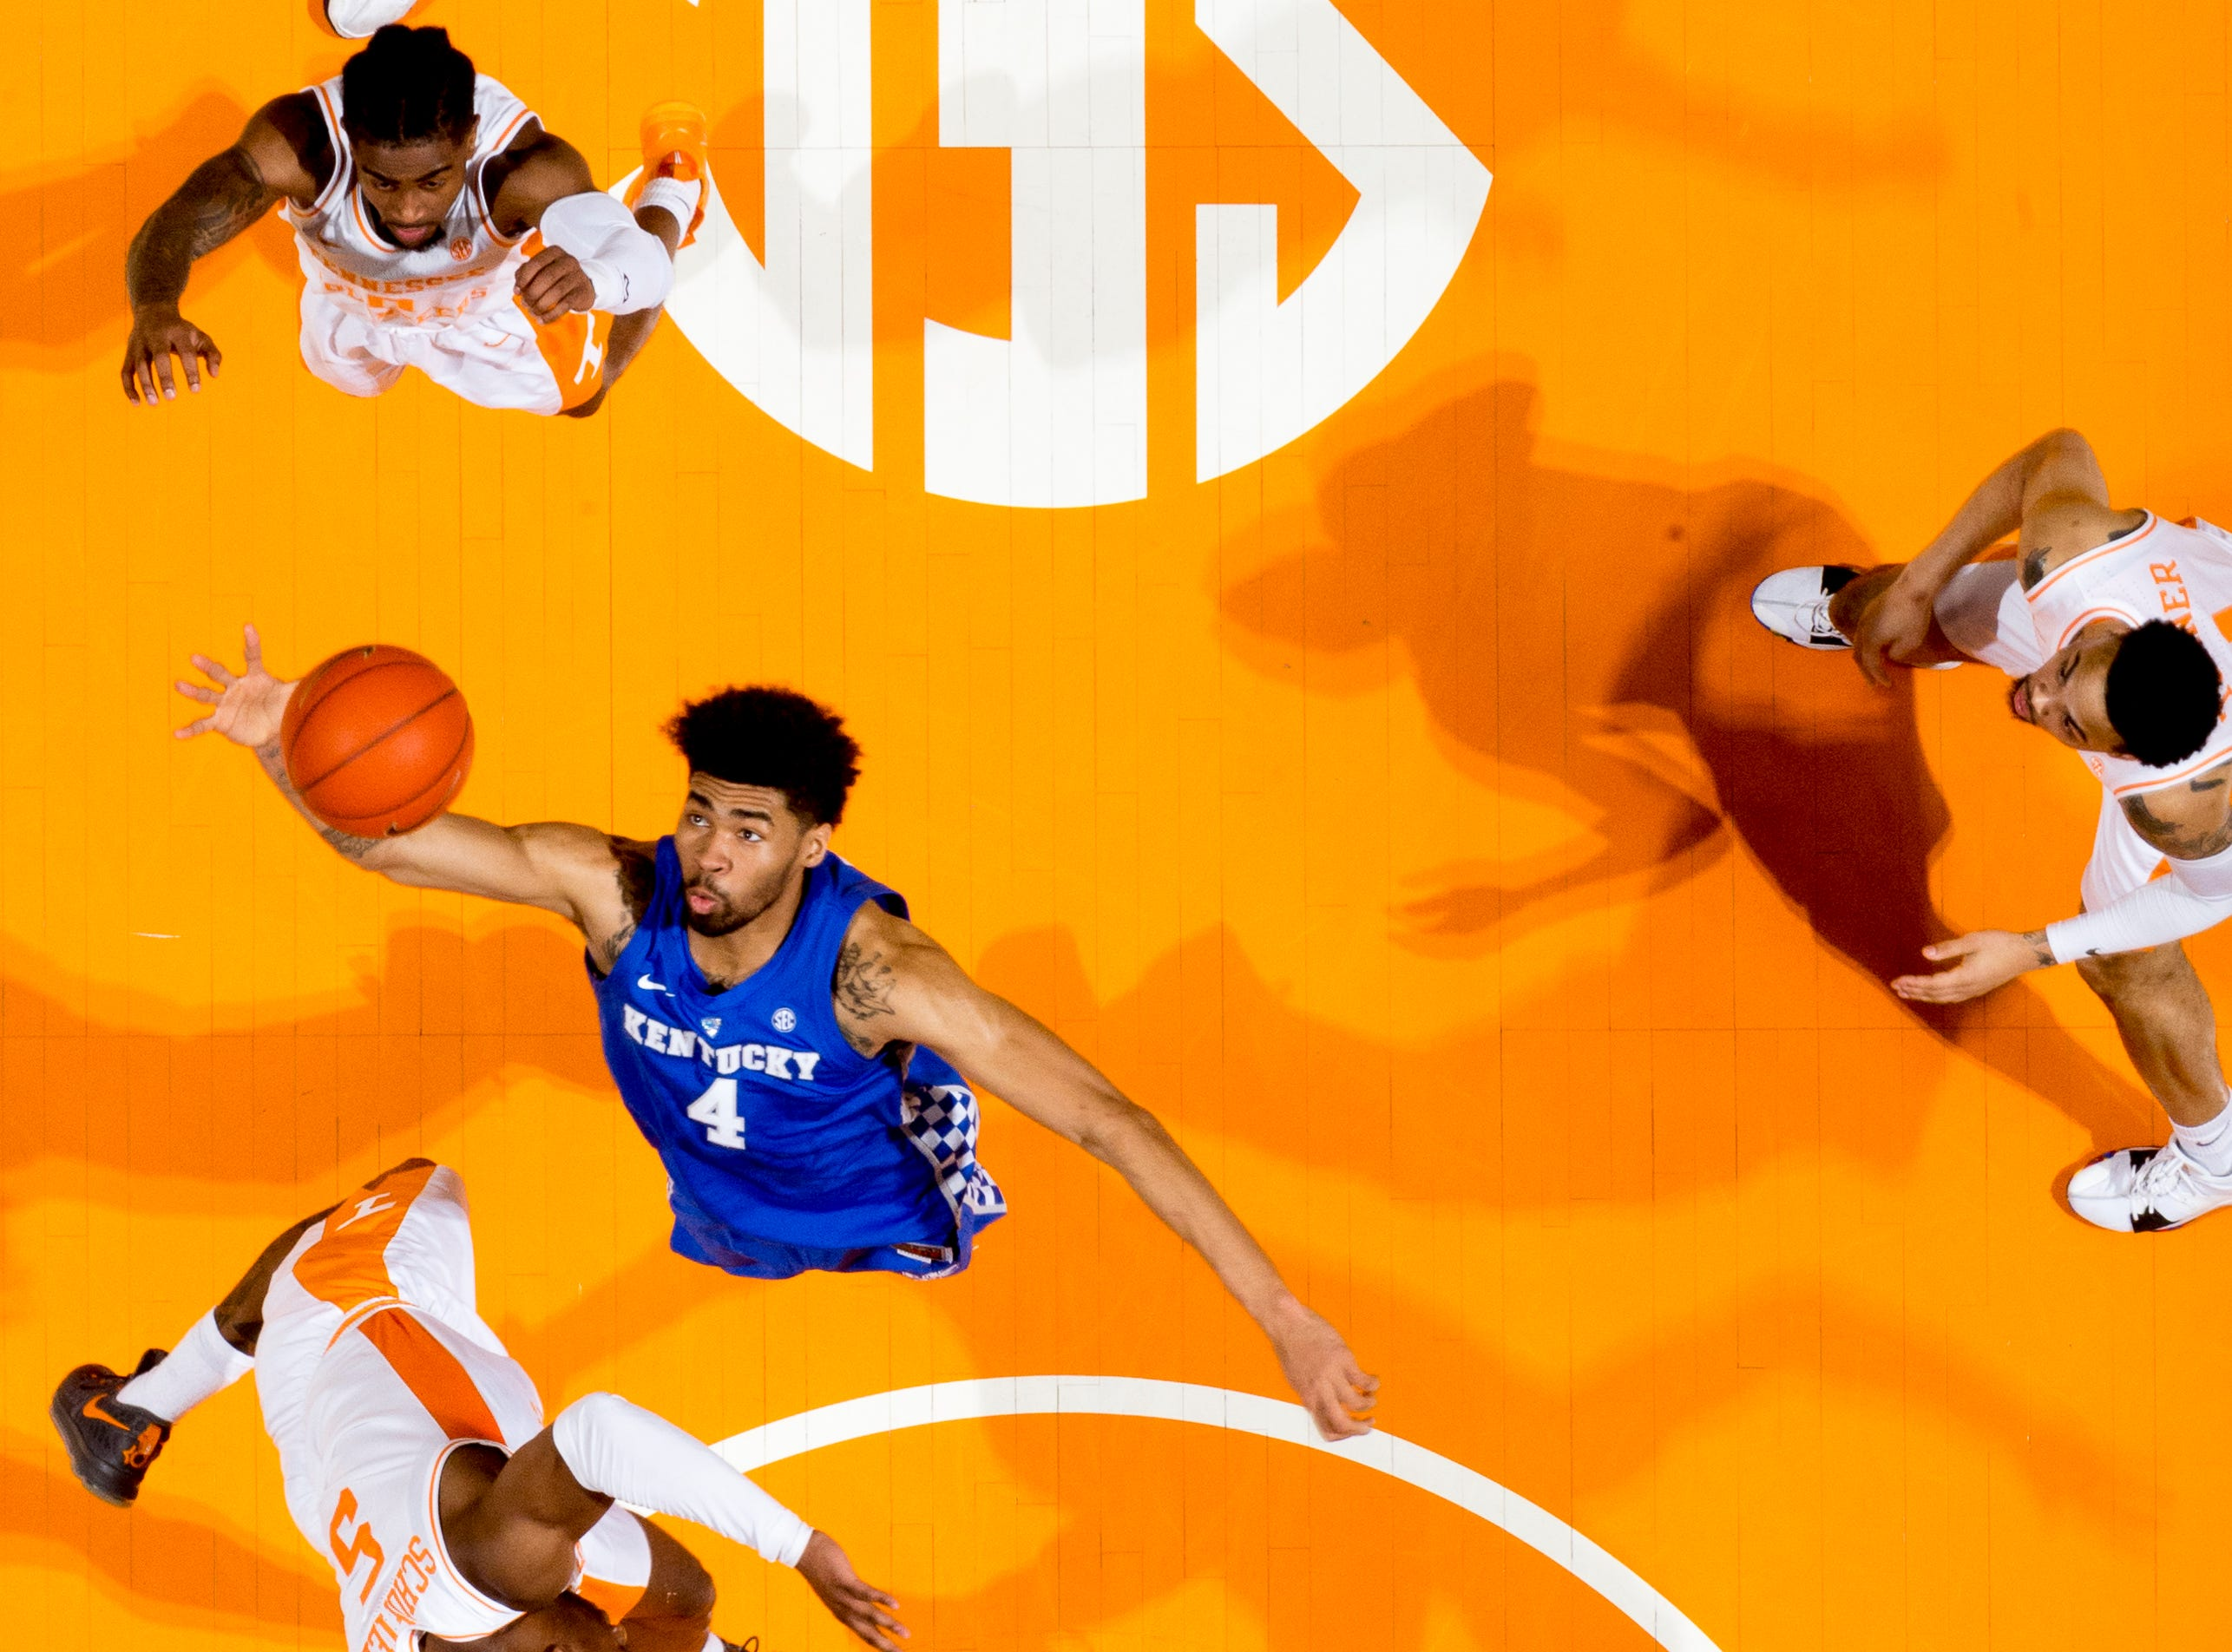 Kentucky forward Nick Richards (4) reaches for the ball during a game between Tennessee and Kentucky at Thompson-Boling Arena in Knoxville, Tennessee on Saturday, March 2, 2019.